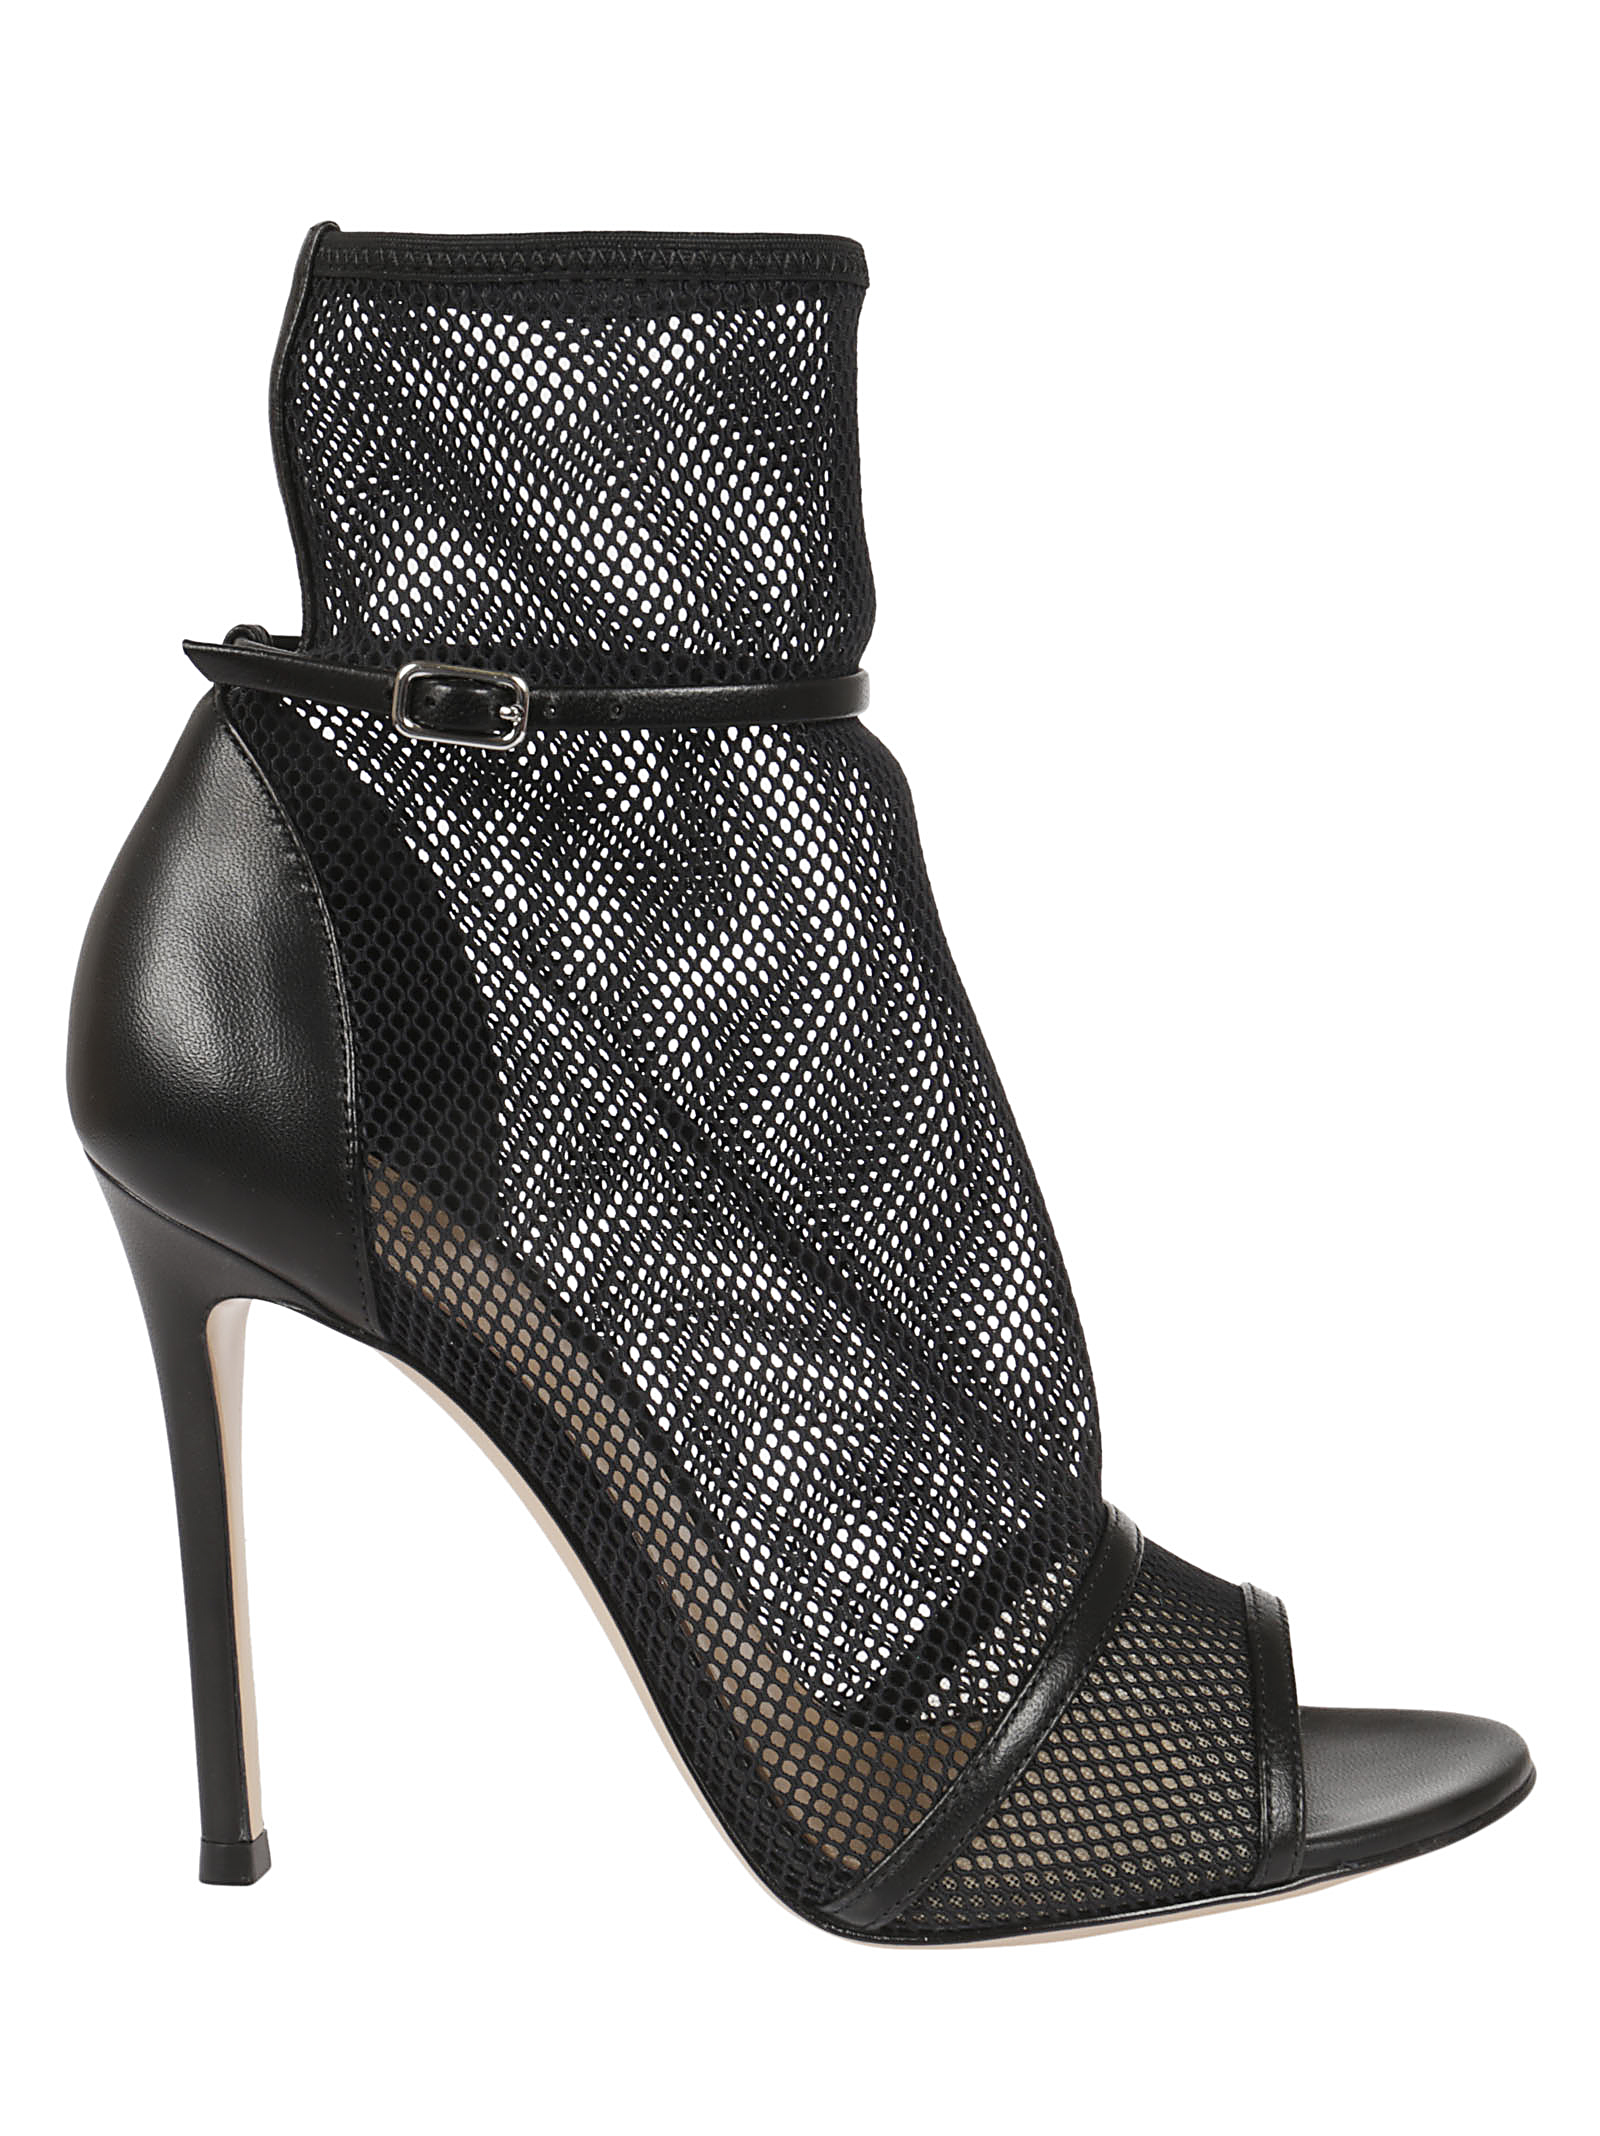 Gianvito Rossi GRID ANKLE BOOT